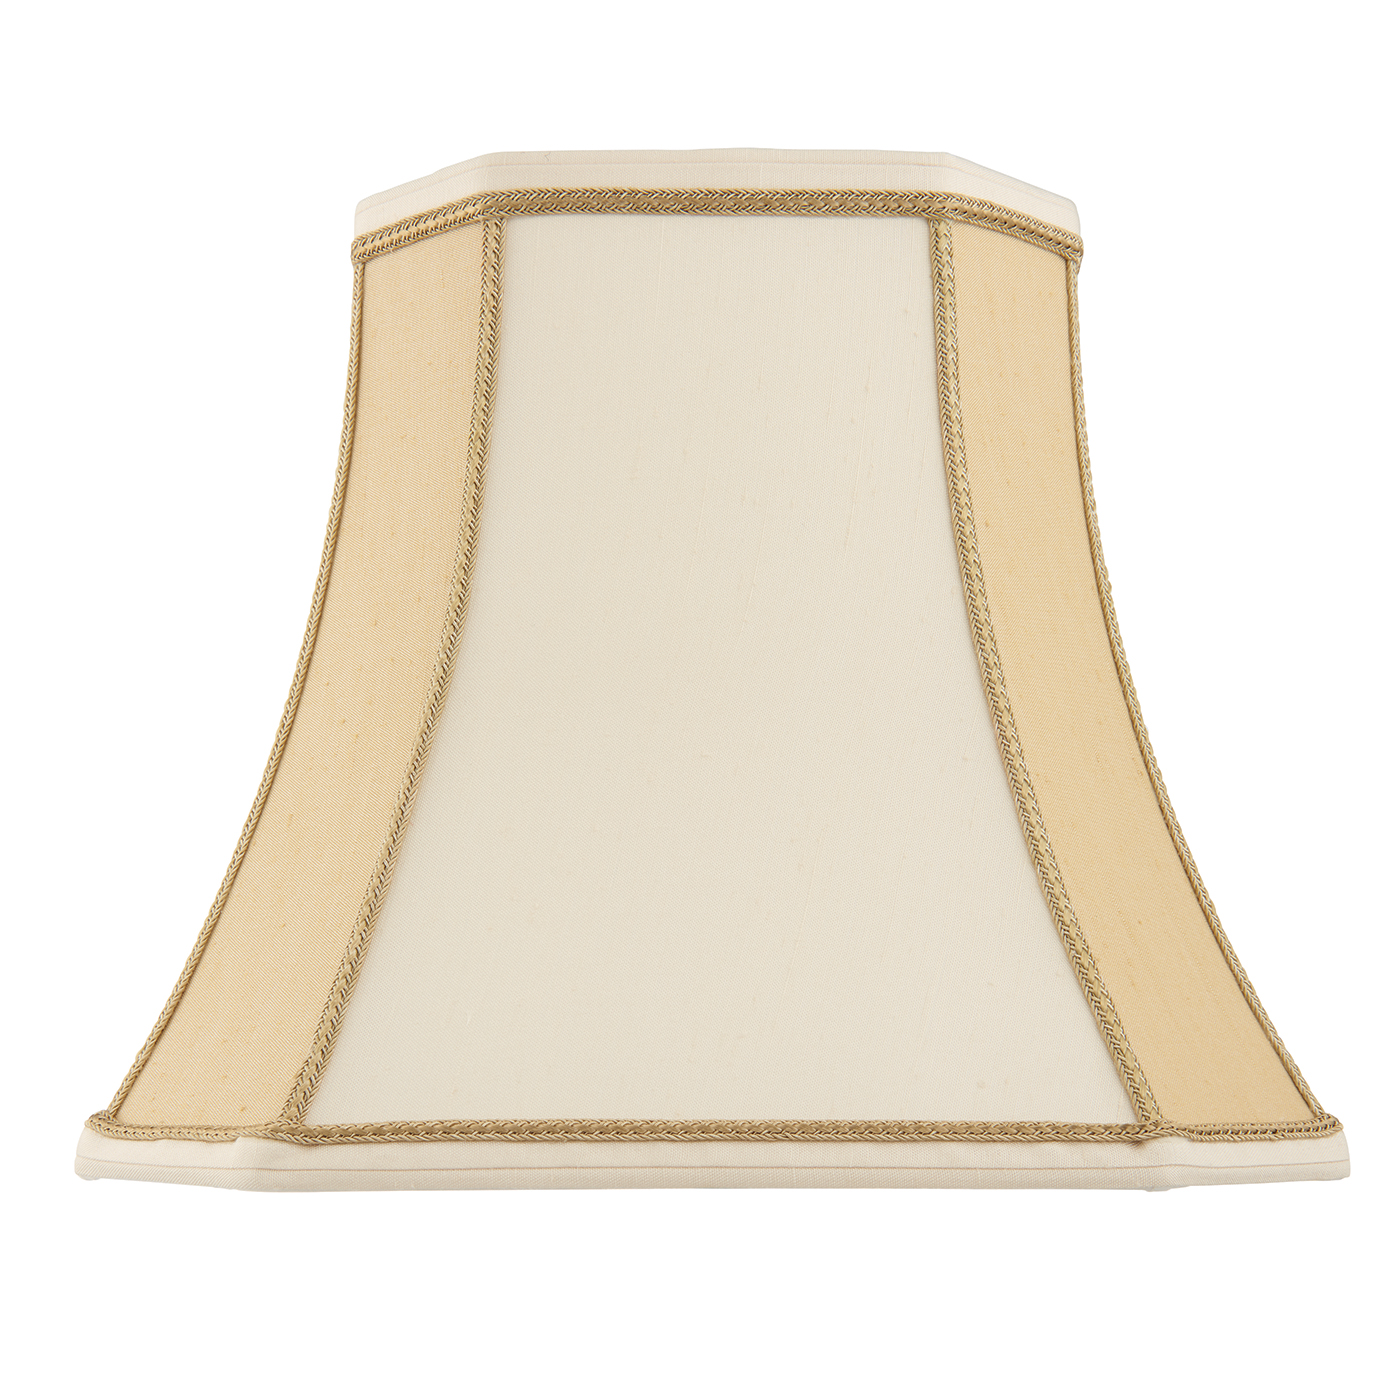 Endon Camilla lampshade 14 inch Two-tone cream faux silk 300mm H x 355mm D max.